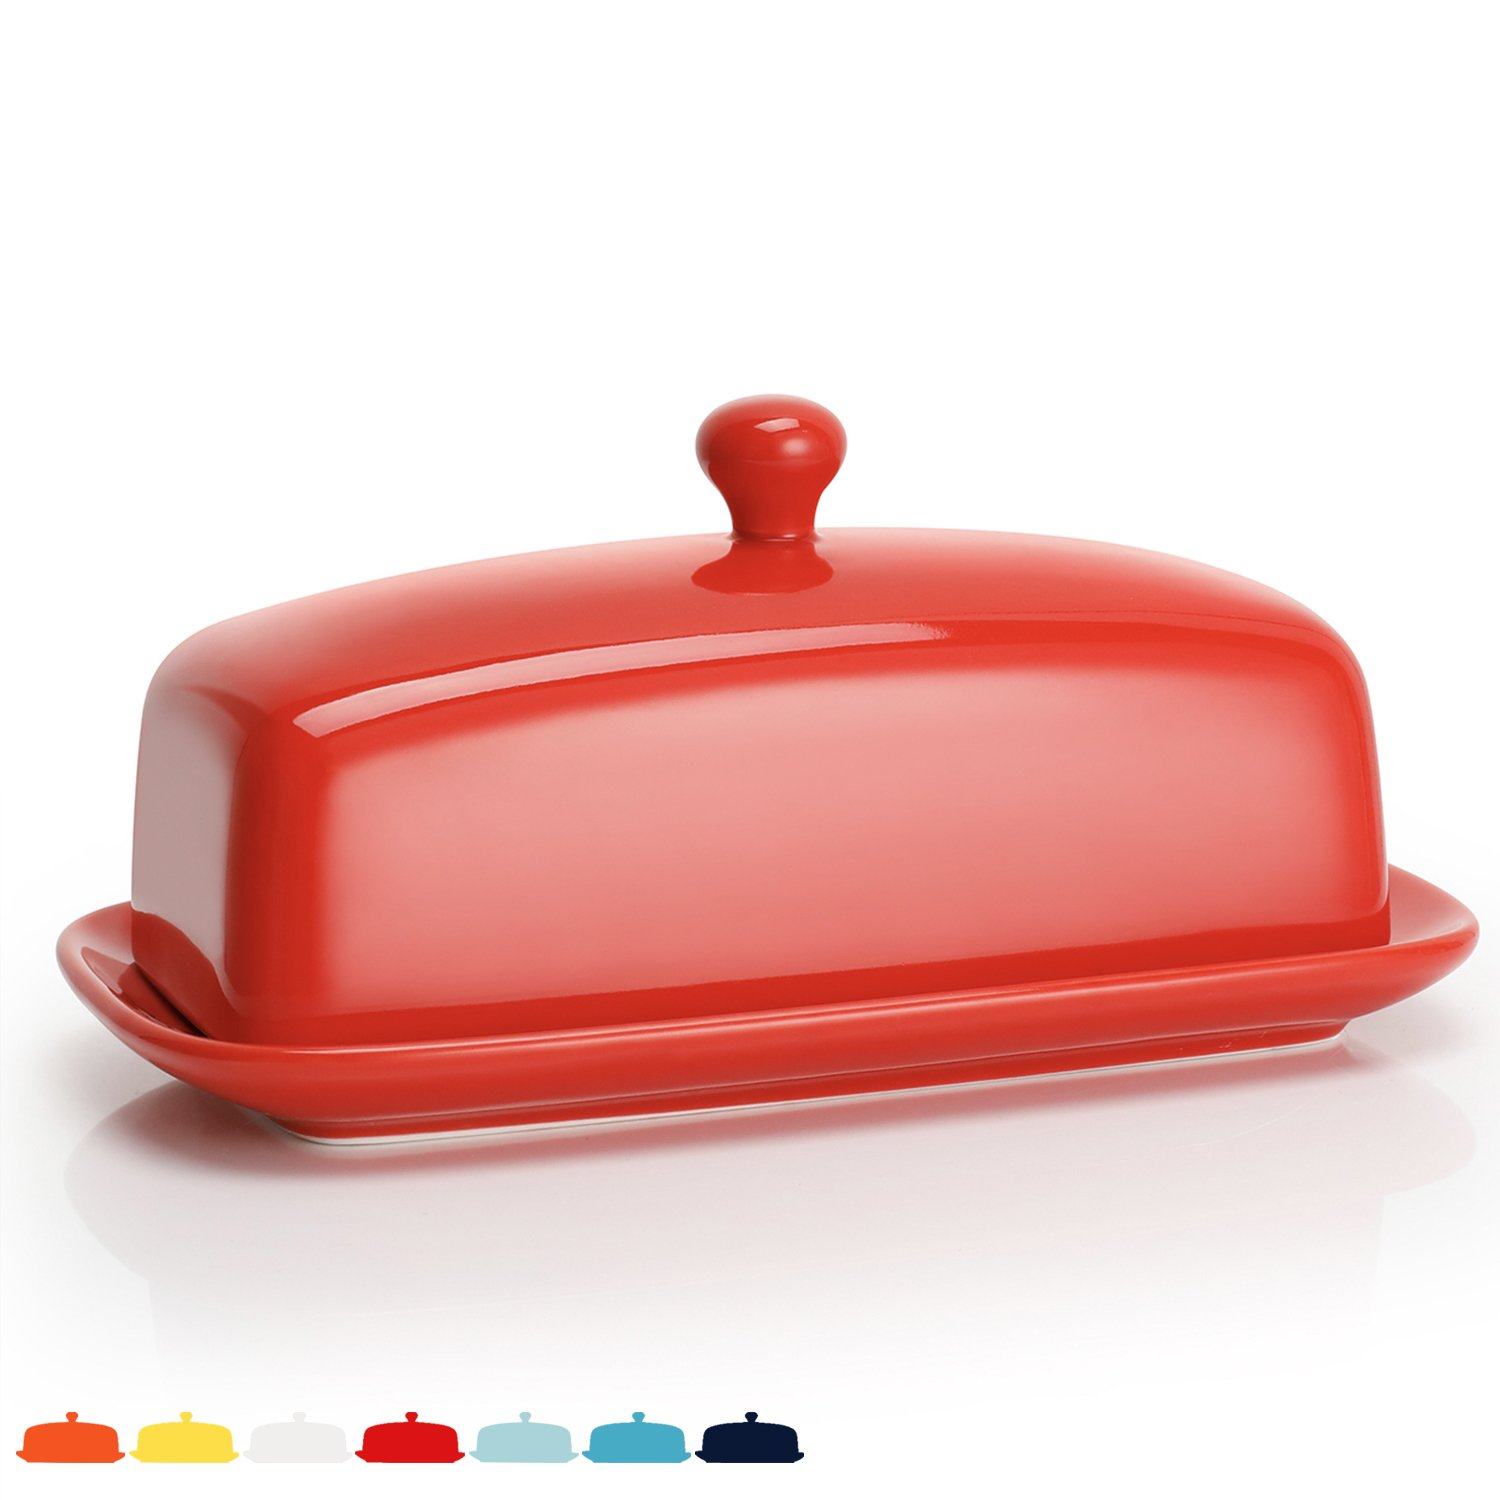 Sweese 3172 Porcelain Butter Dish with Lid, Perfect for East/West Butter, Red